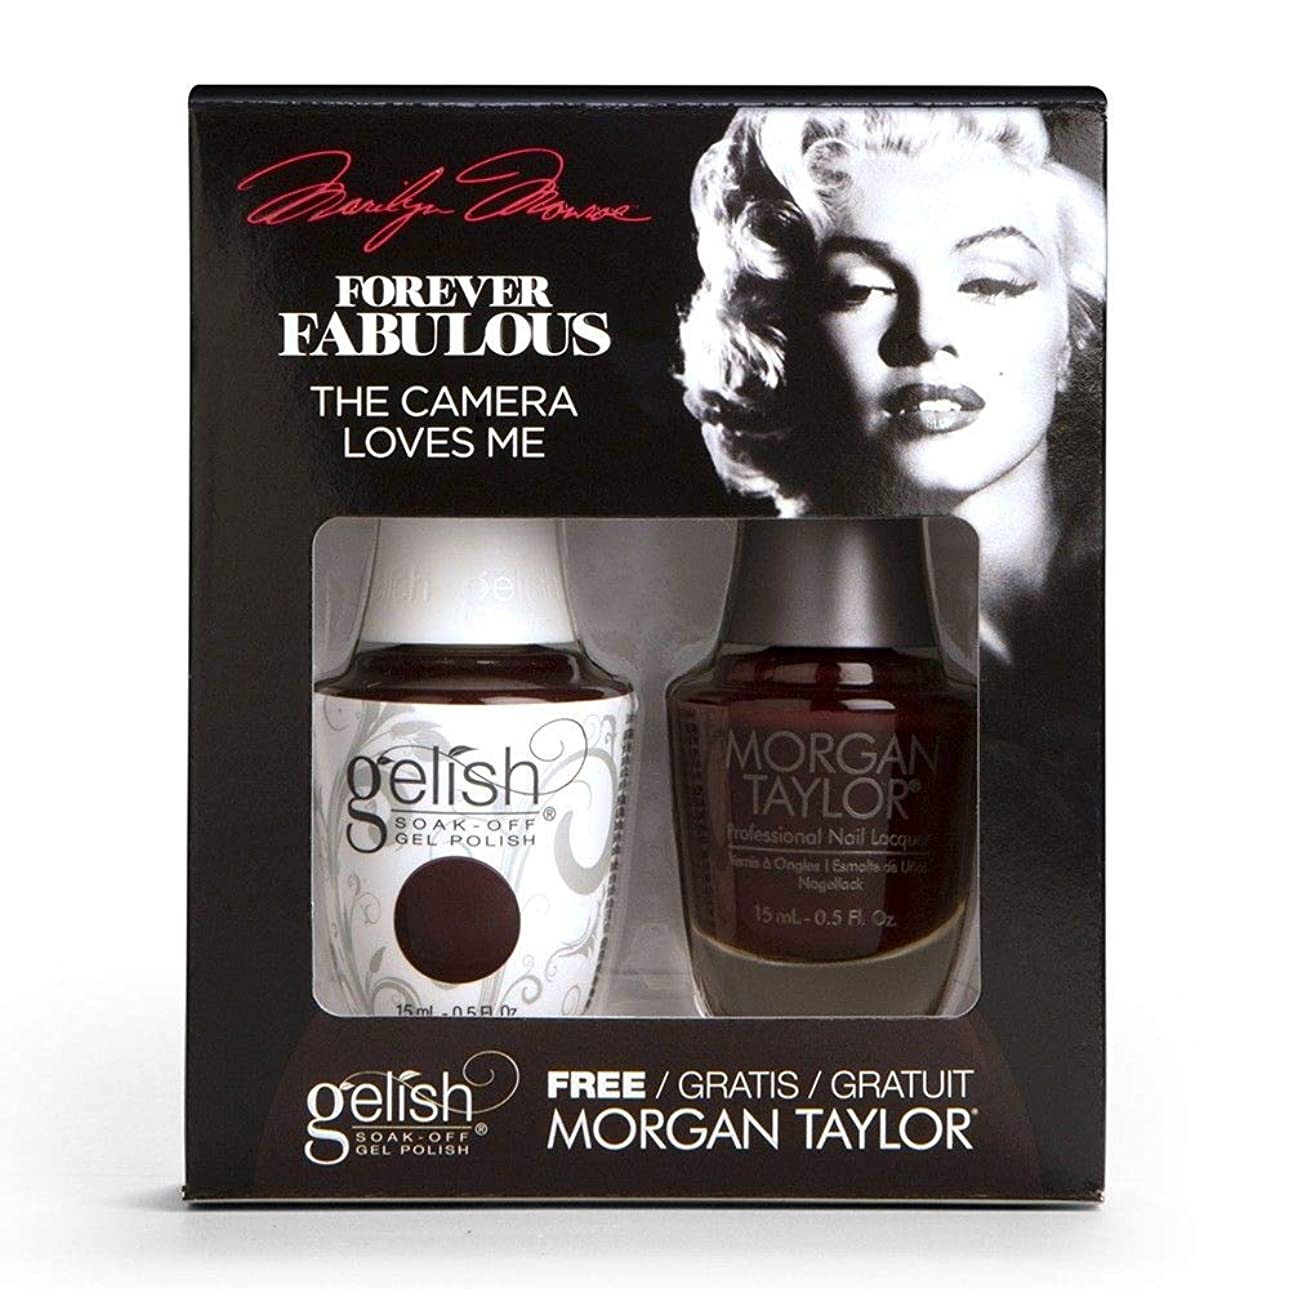 剥ぎ取る落胆させる廃棄するHarmony Gelish & Morgan Taylor - Two Of A Kind - Forever Fabulous Marilyn Monroe - The Camera Loves Me 15 mL / 0.5 Oz